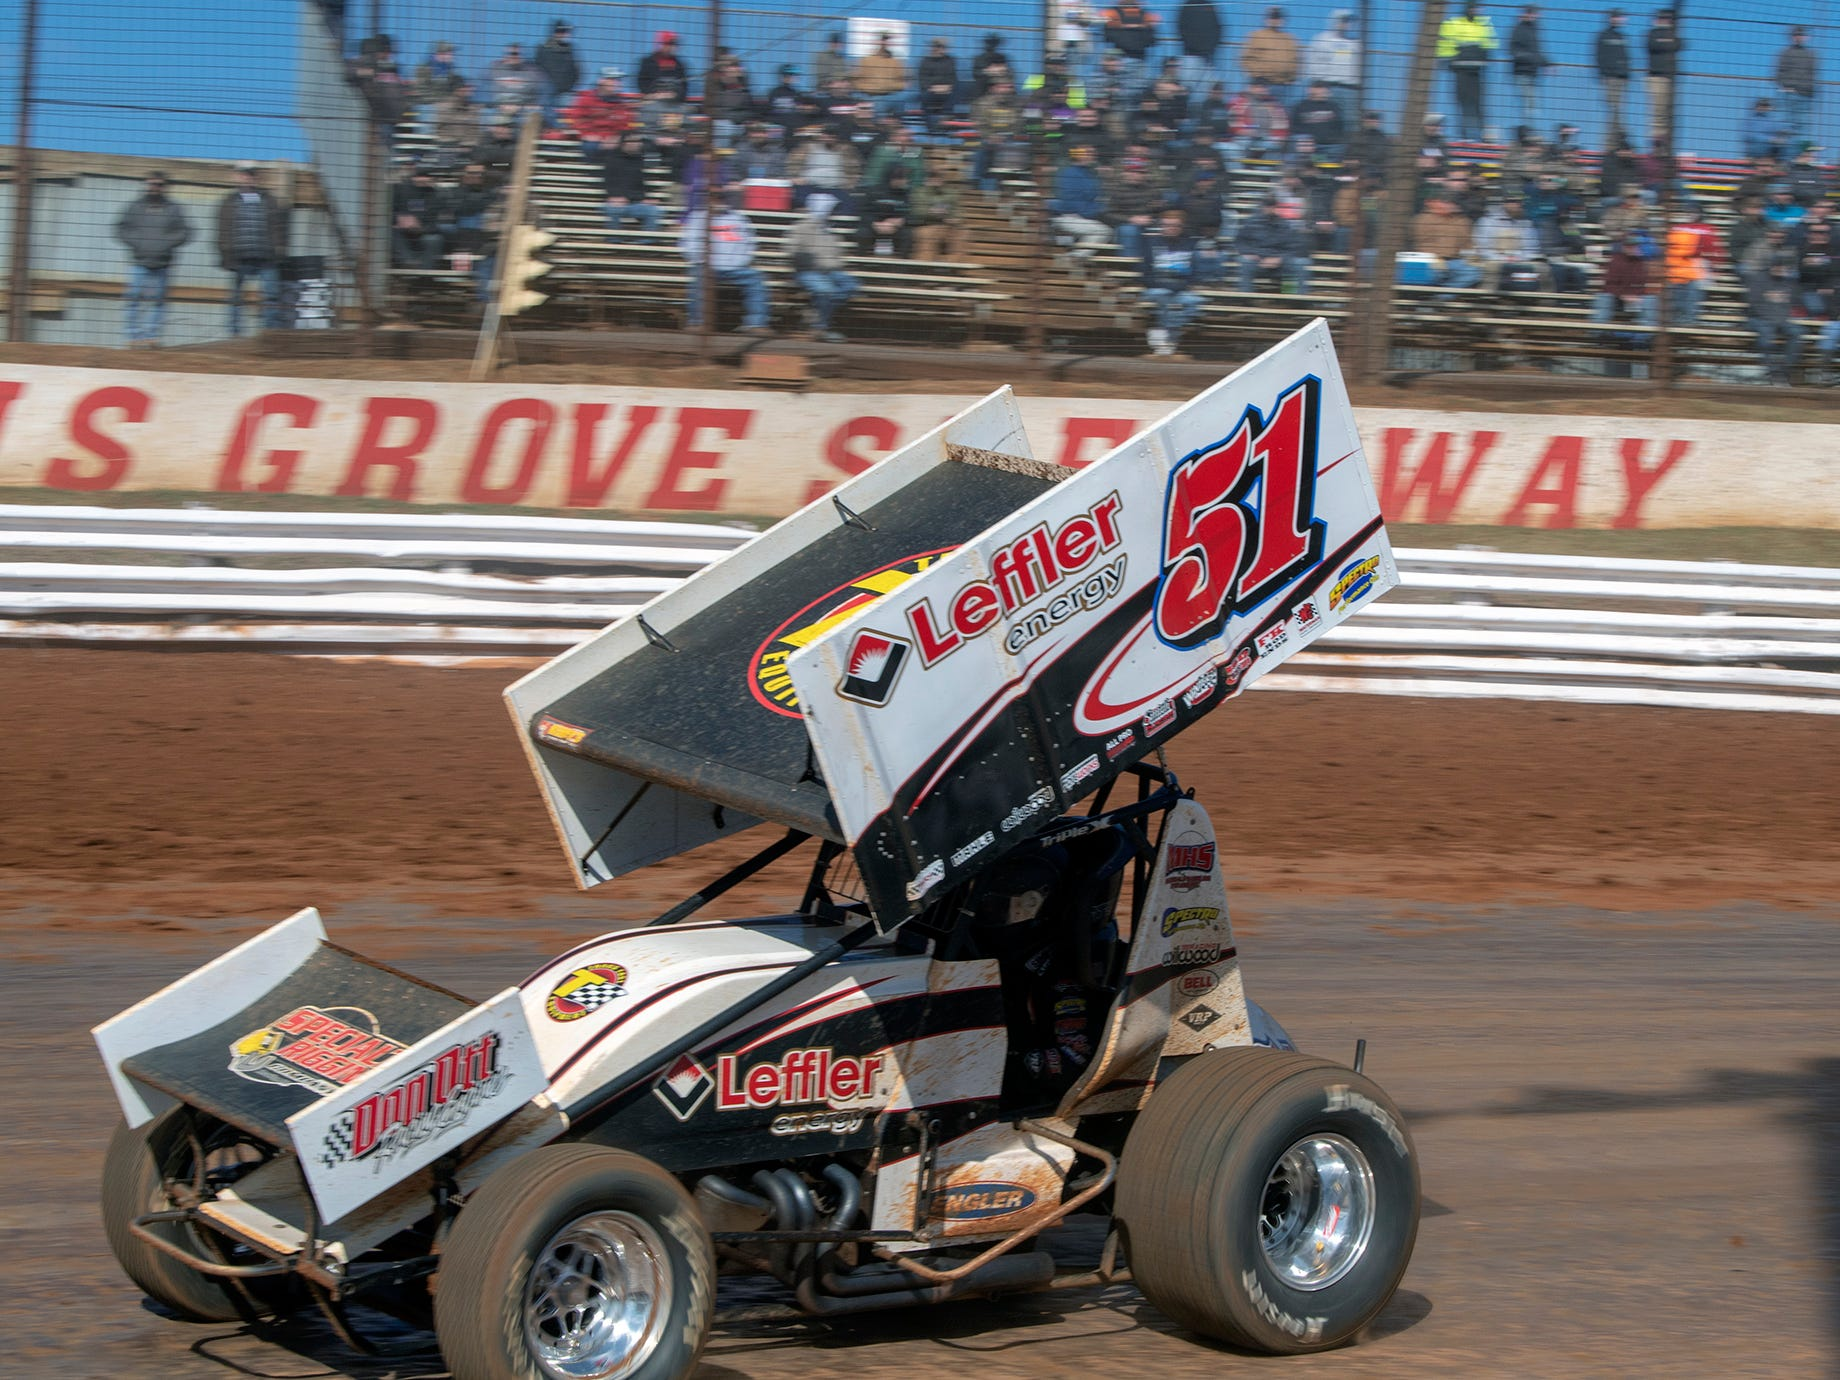 The 51 car, driven by Freddie Rahmer, takes a turn at the Williams Grove season opener for 410 sprints Sunday March 17, 2019. Rahmer was back on the track after crashing a car a week earlier during the Ice Breaker at Lincoln Speedway.